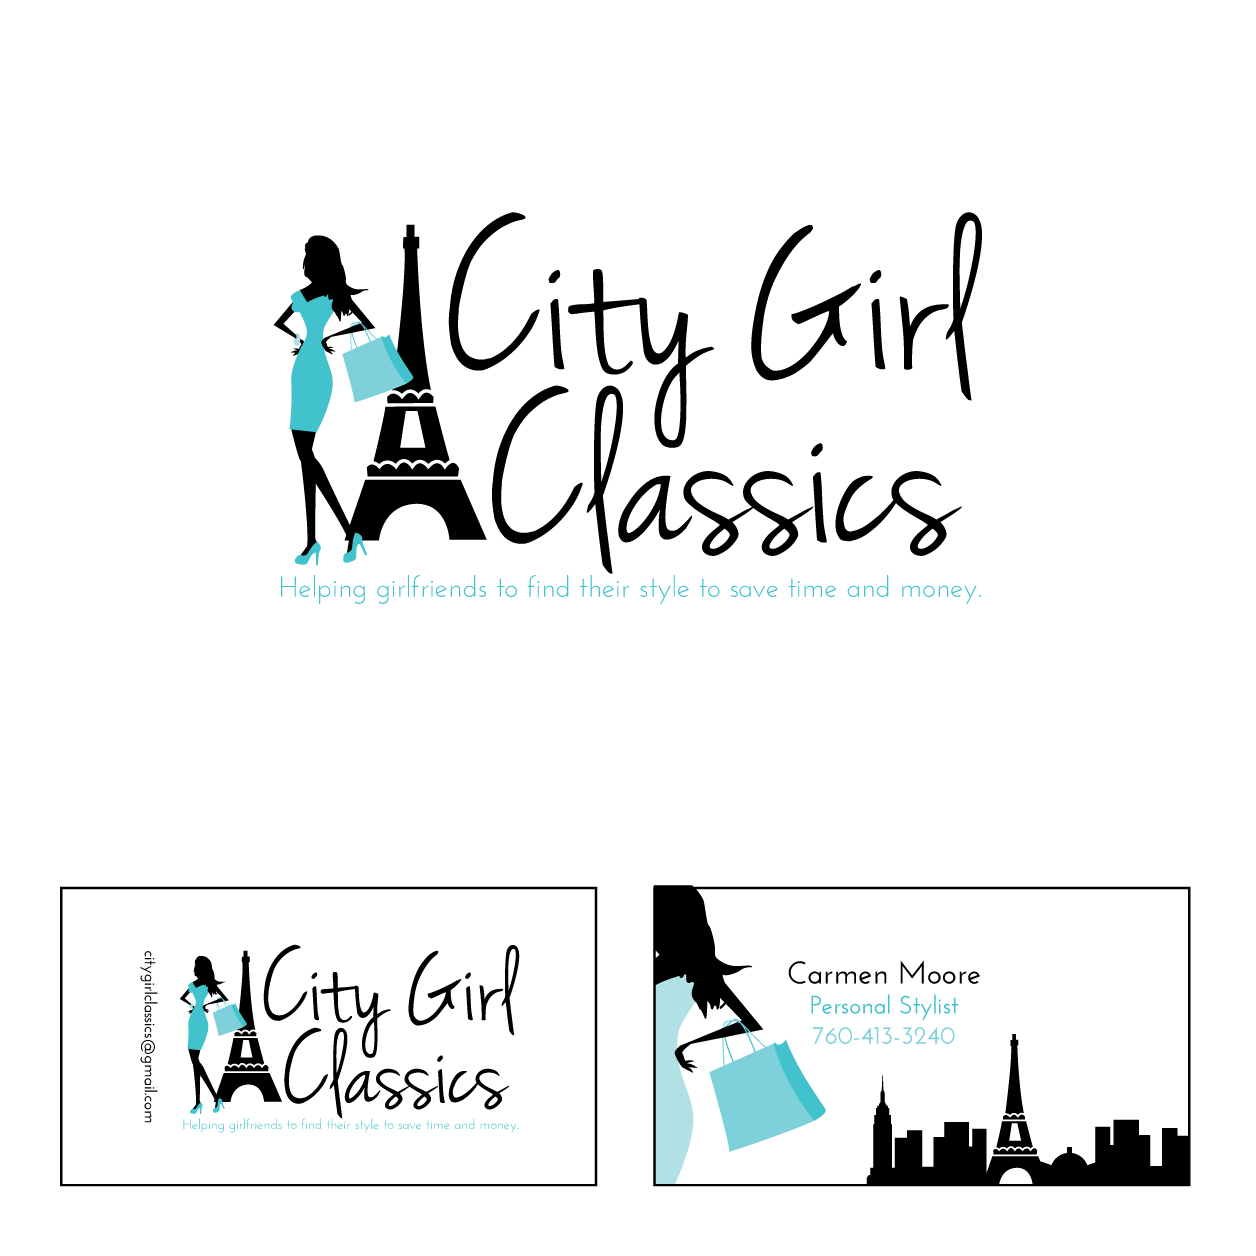 City Girl Classics needs a new logo and business card